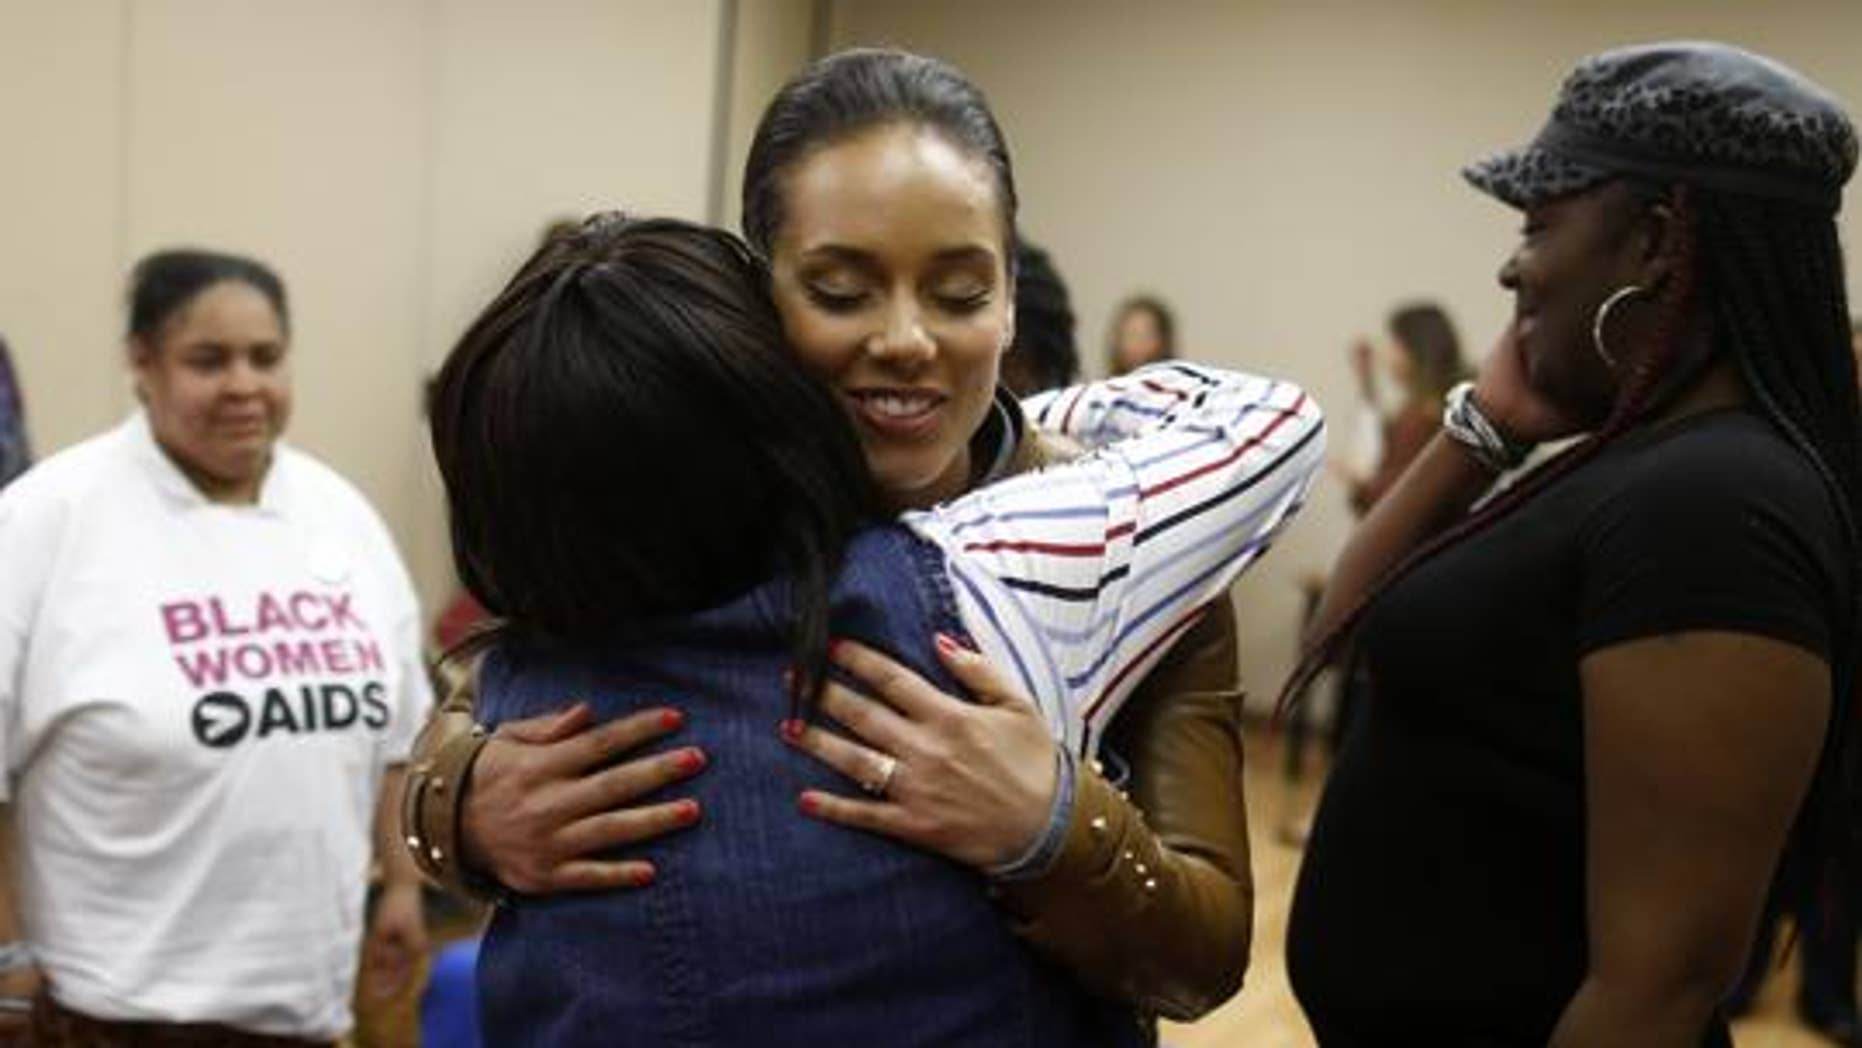 Grammy Award-winning singer Alicia Keys hugs HIV positive woman as she visits an HIV women's support group at United Medical Center in Washington, Monday, April 15, 2013.  (AP Photo/Charles Dharapak)